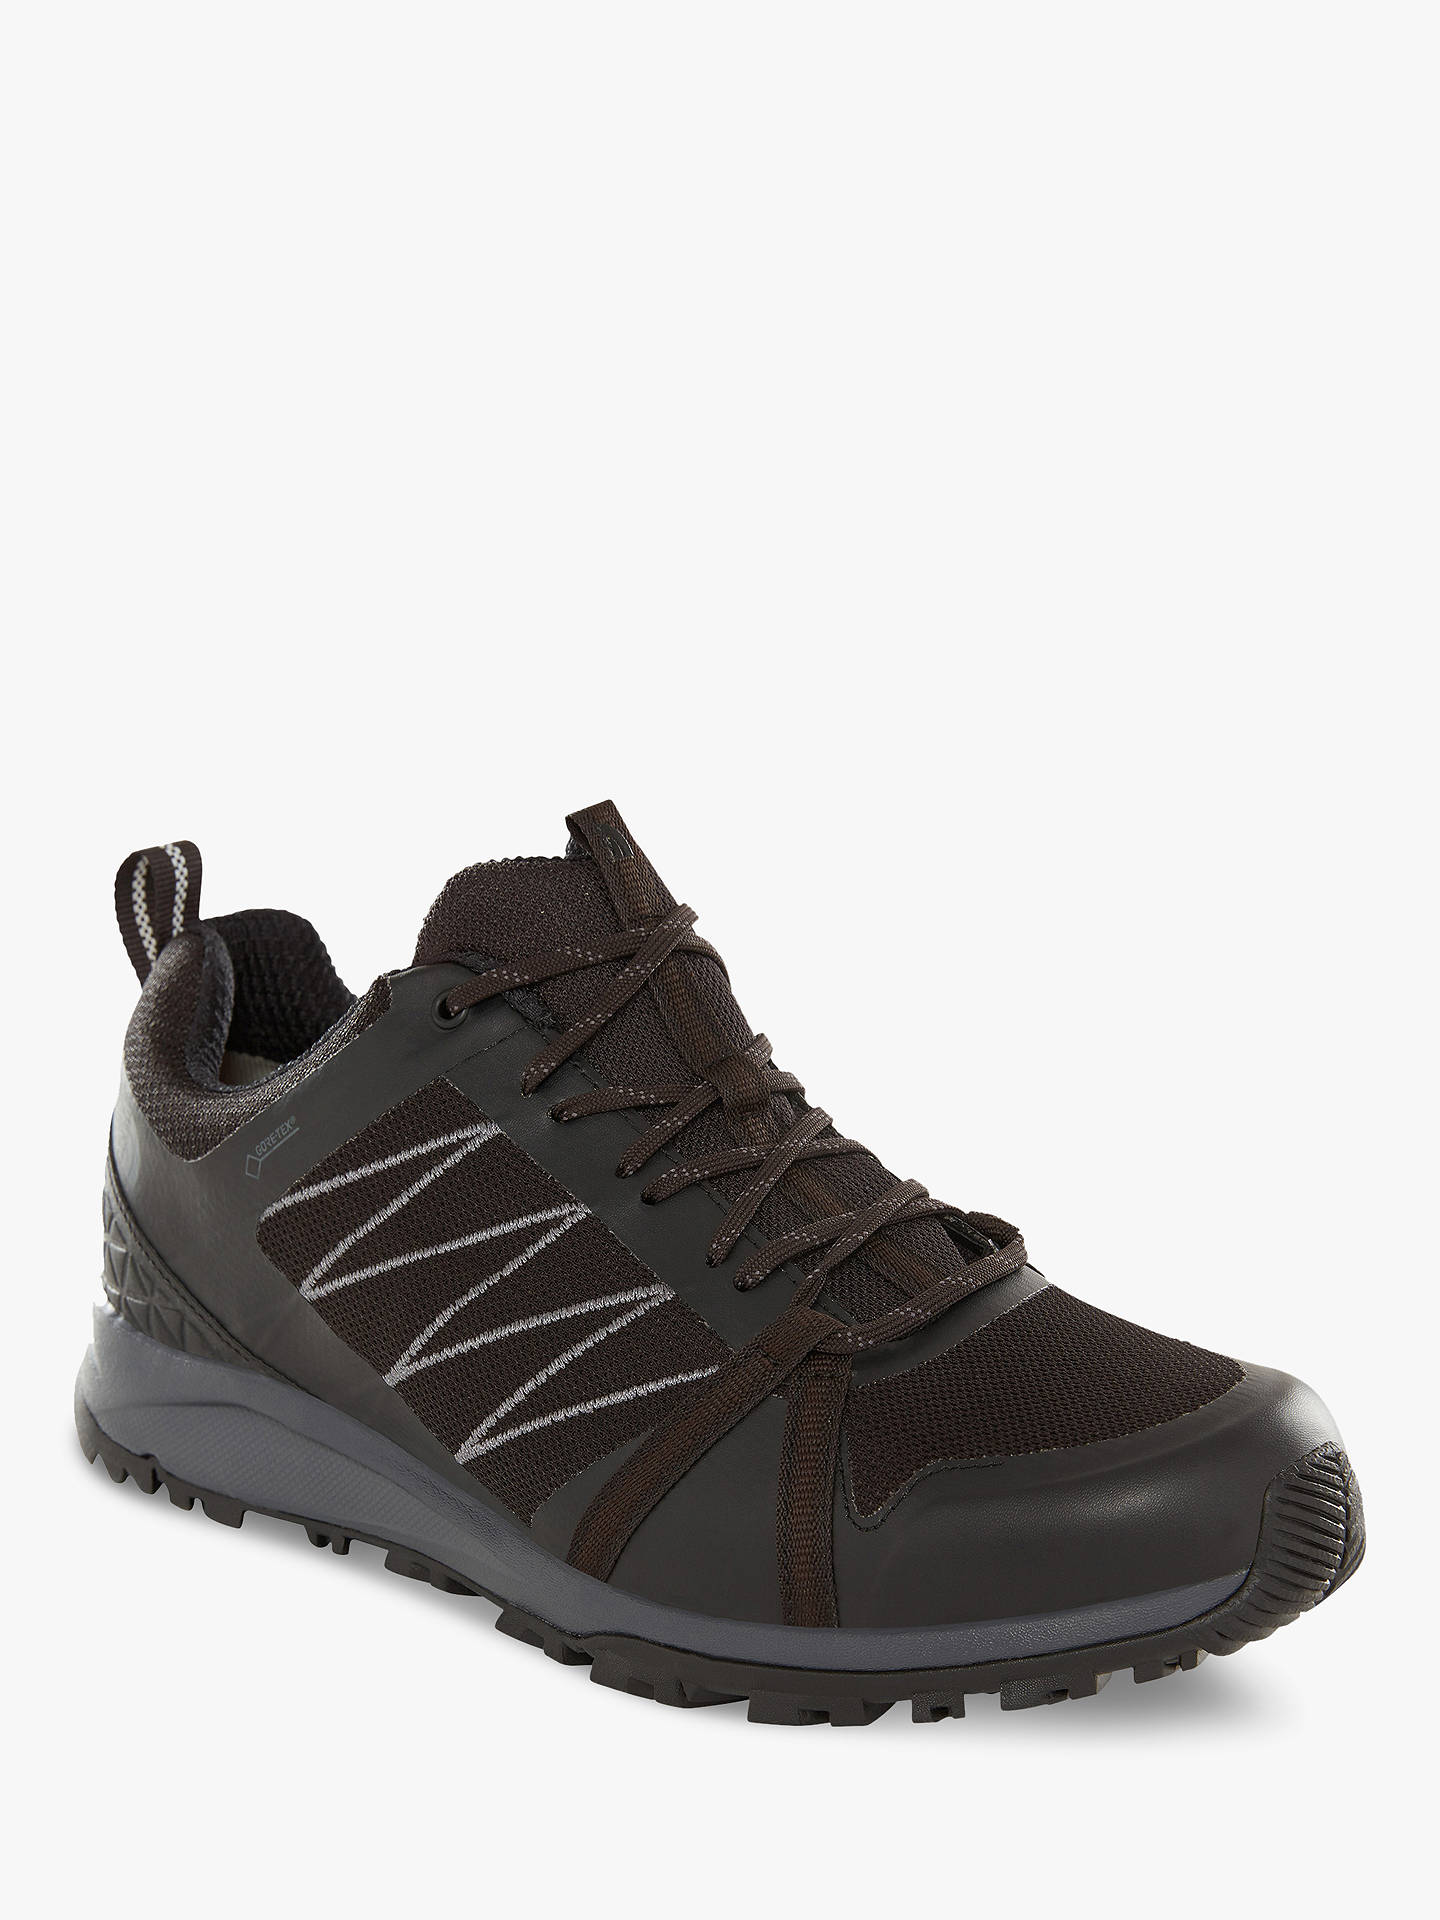 a39dddee1 Buy The North Face Litewave Fastpack II GTX Men s Hiking Shoes